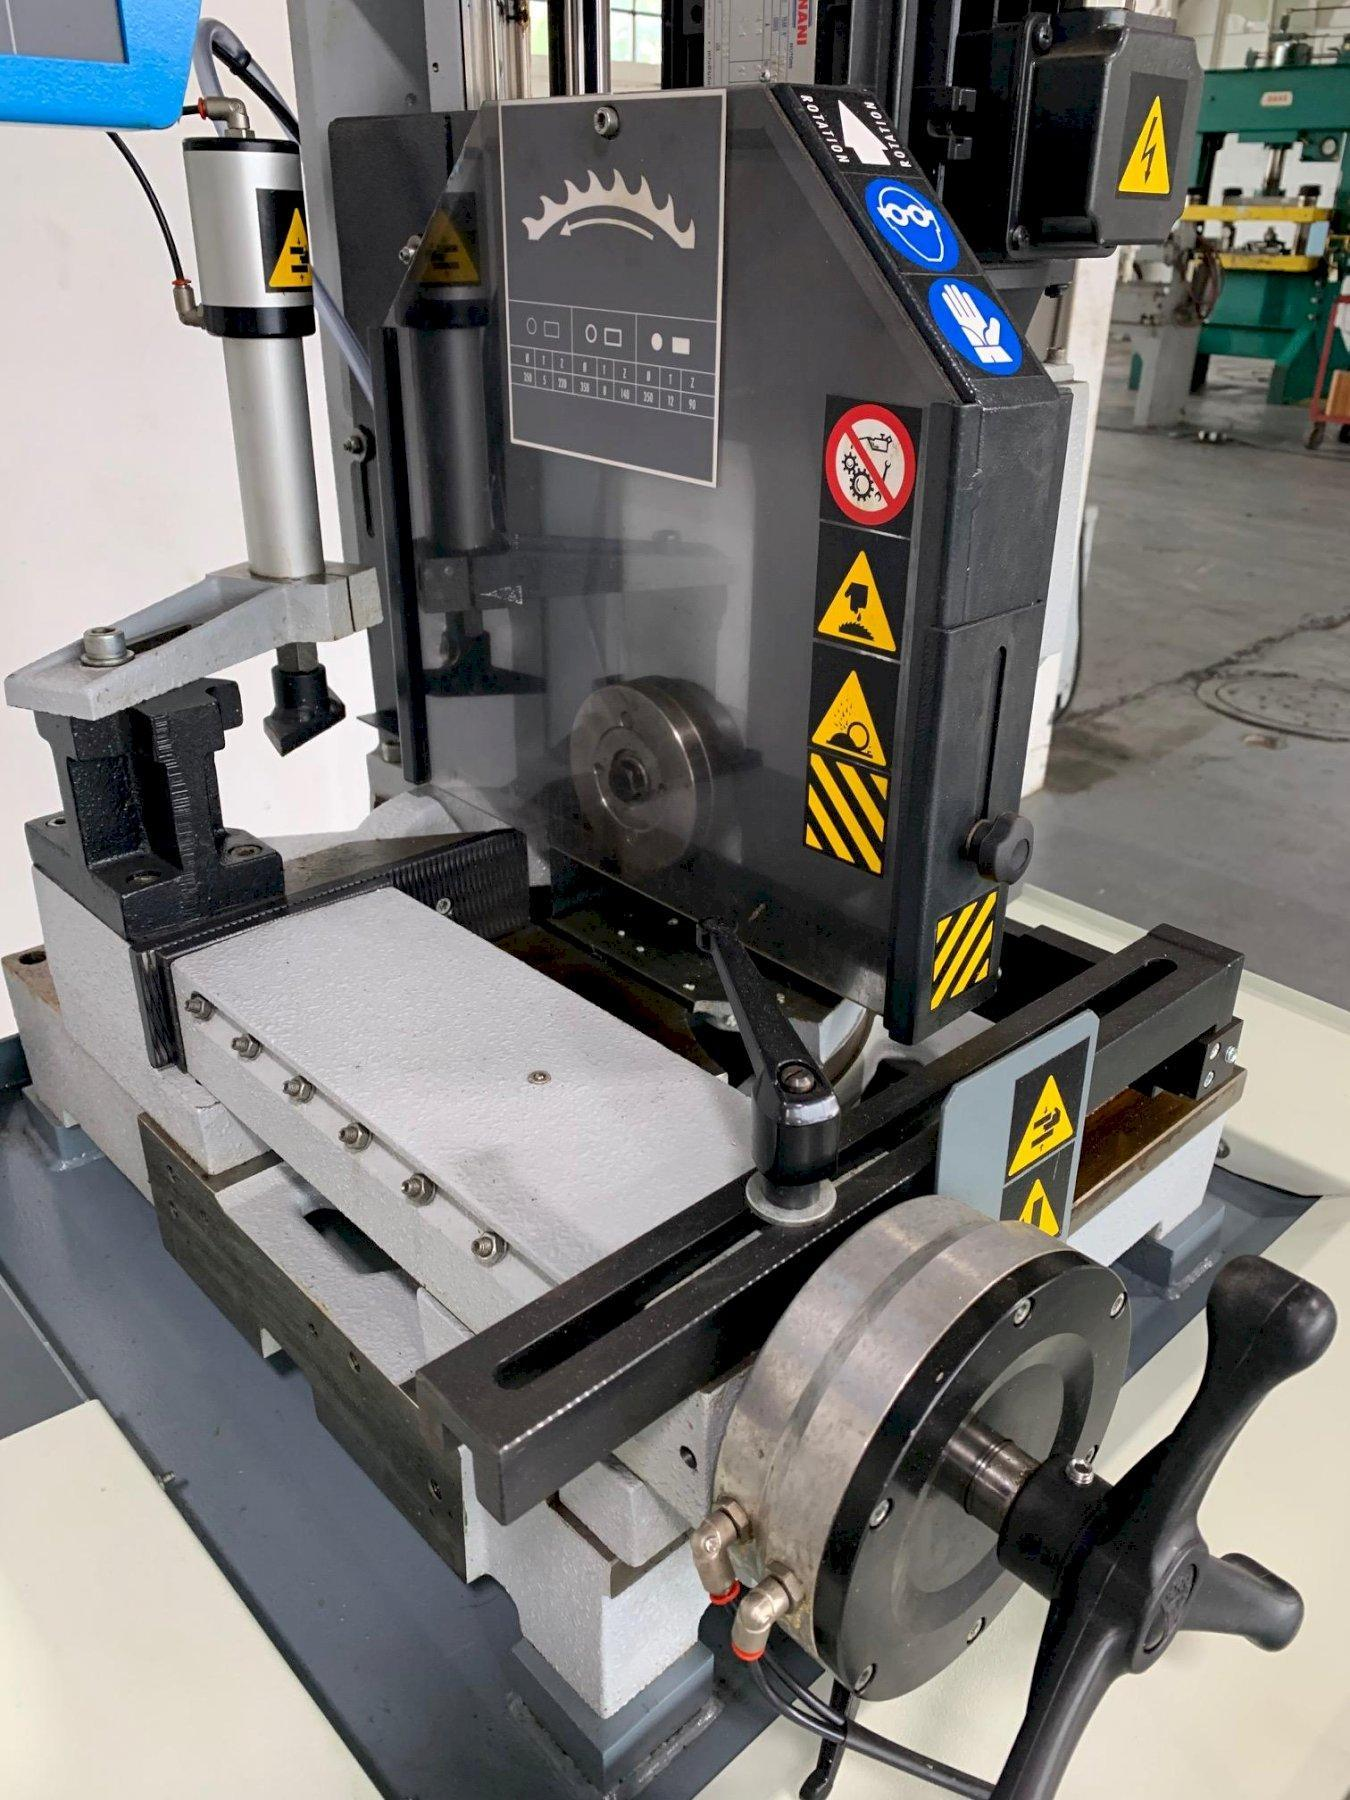 DEMO HYD-MECH MODEL C350-2S SEMI-AUTOMATIC CIRCULAR COLD SAW, Stock # 10766, Year 2018